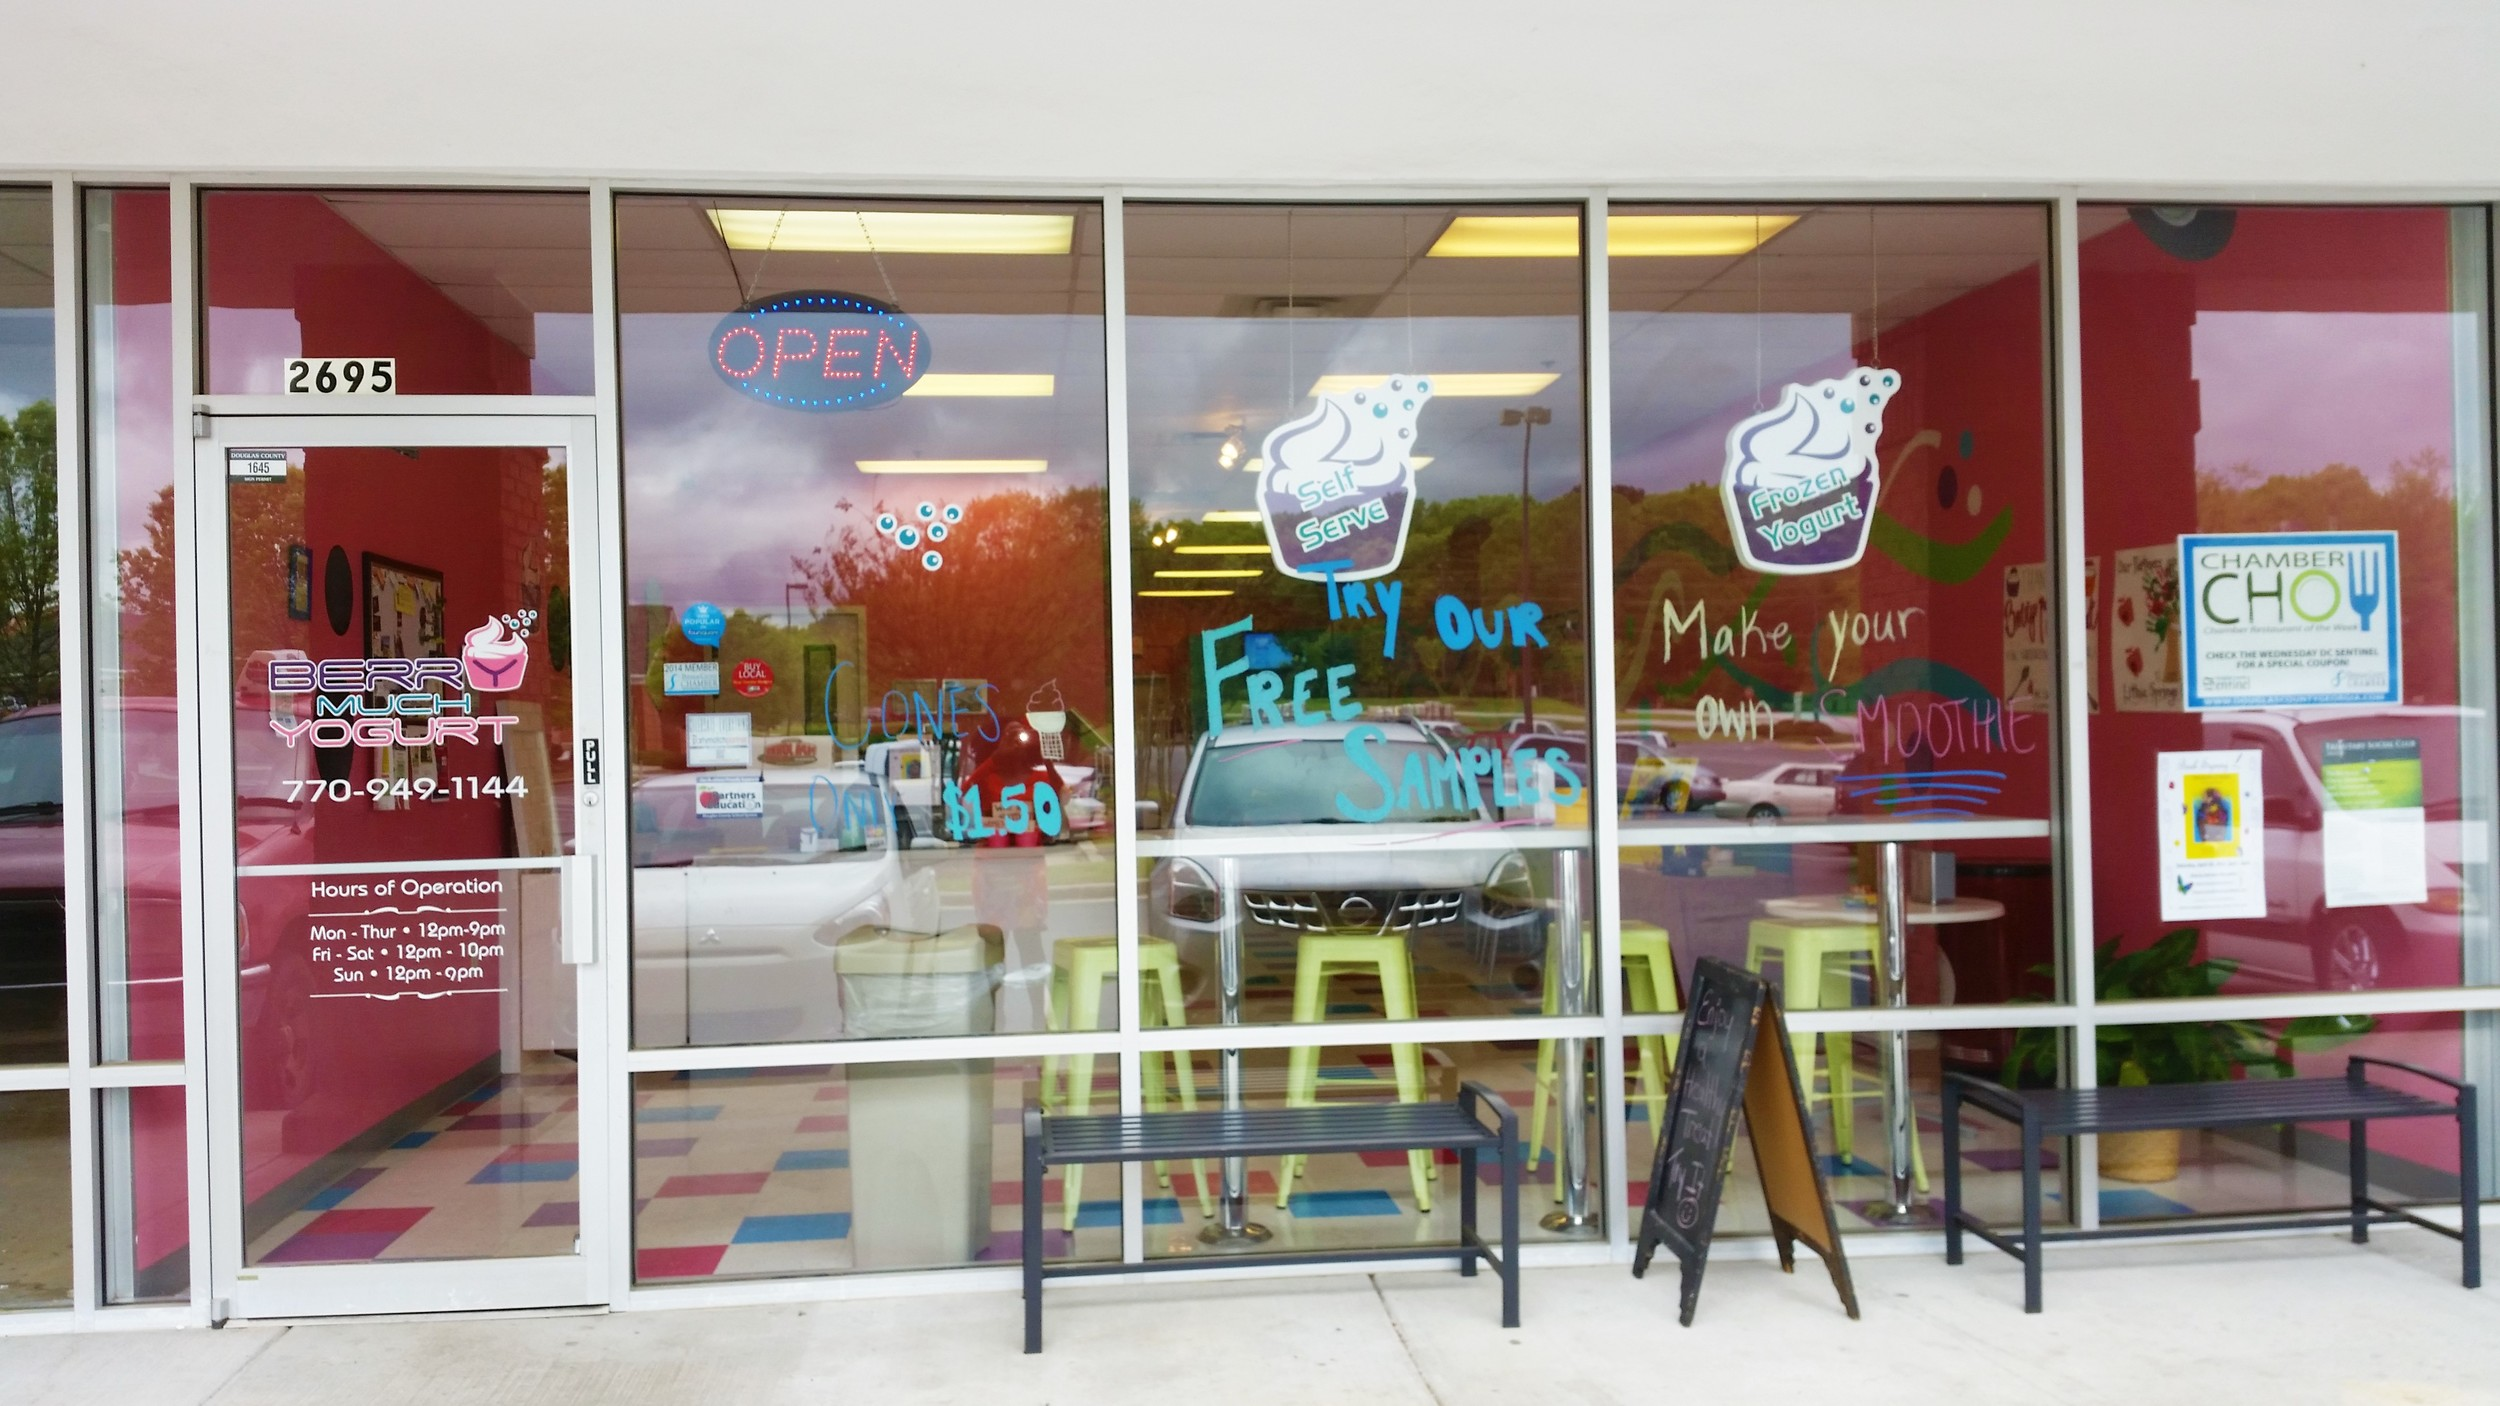 """This is the place.  Just looking at the store front makes you smile.  This location was voted """"Restaurant of the Week"""" for April 19 - 25, 2015."""